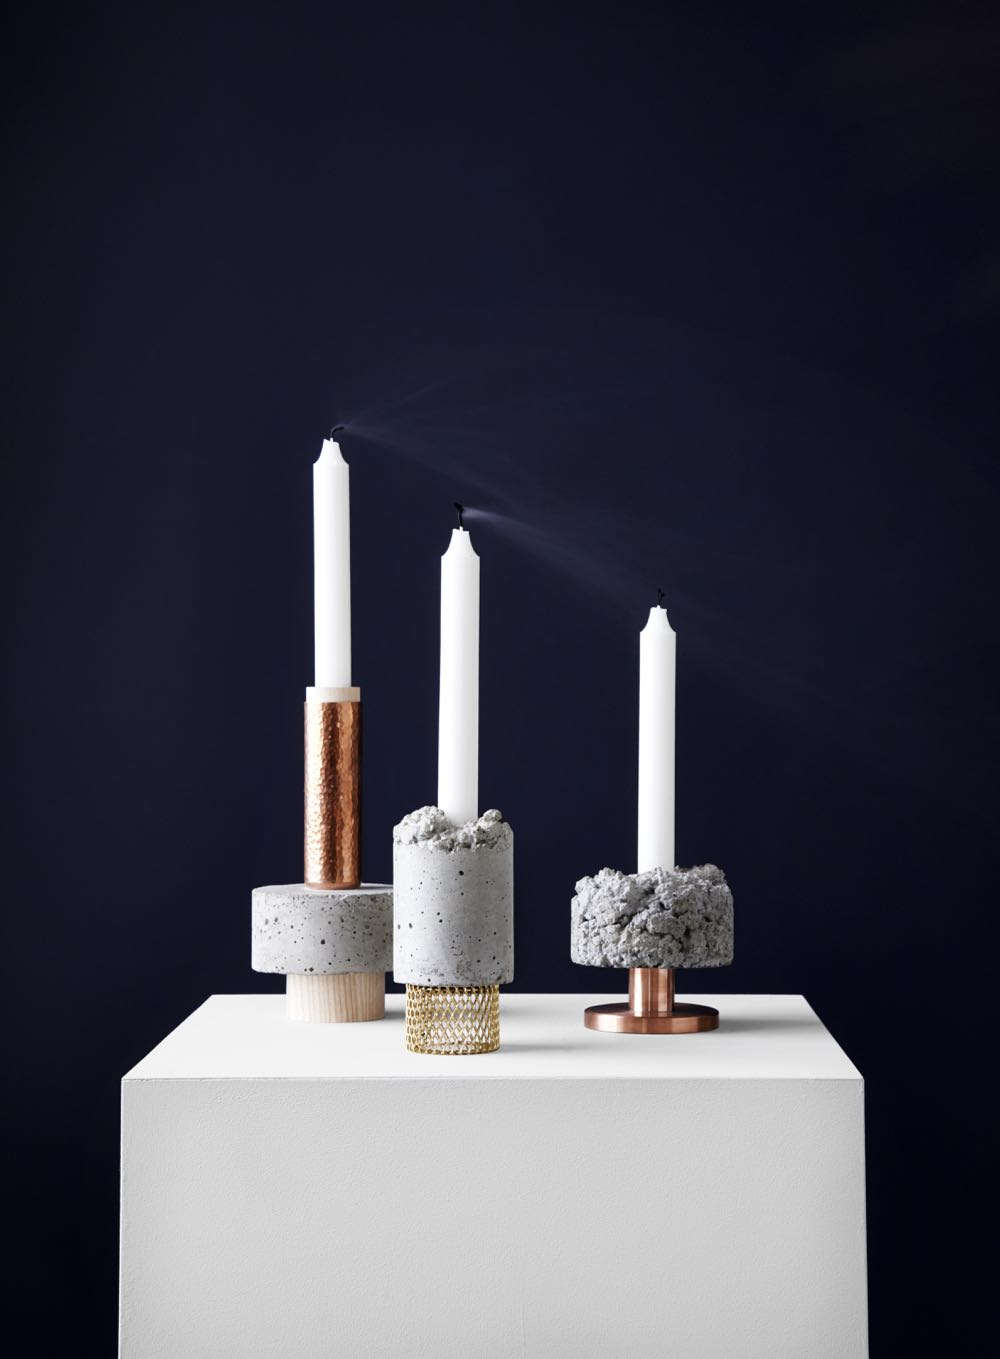 'Crowd' candleholders by David Taylor for New Works. Concrete, copper and brass in various material combinations and configurations.